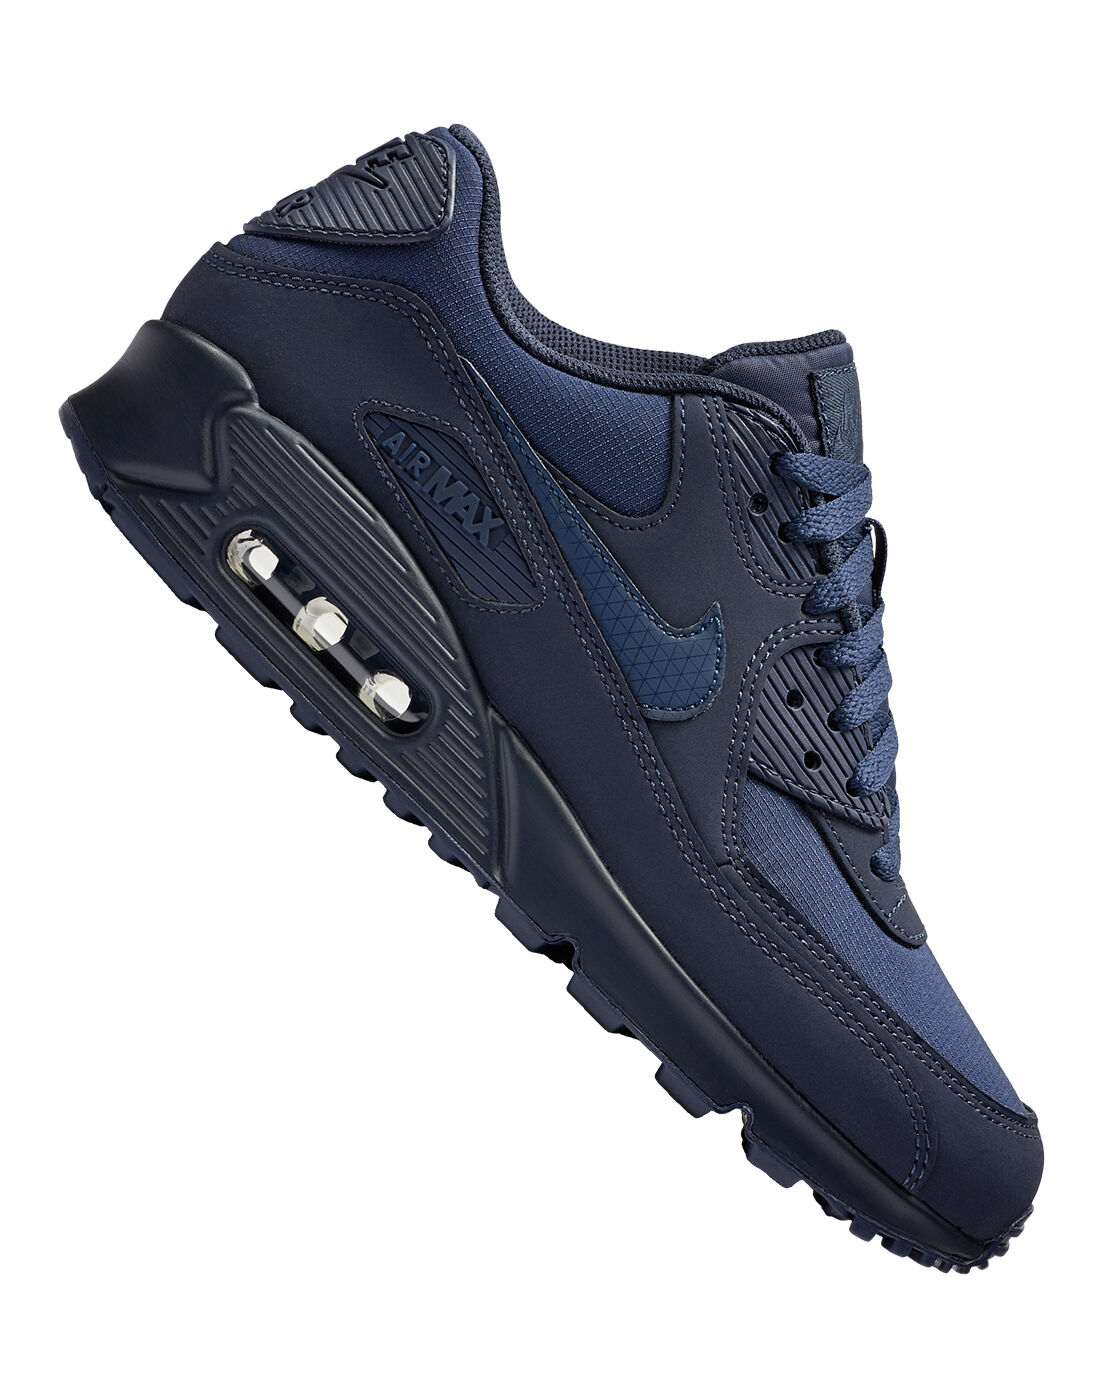 Men's Navy Nike Air Max 90 | Life Style Sports